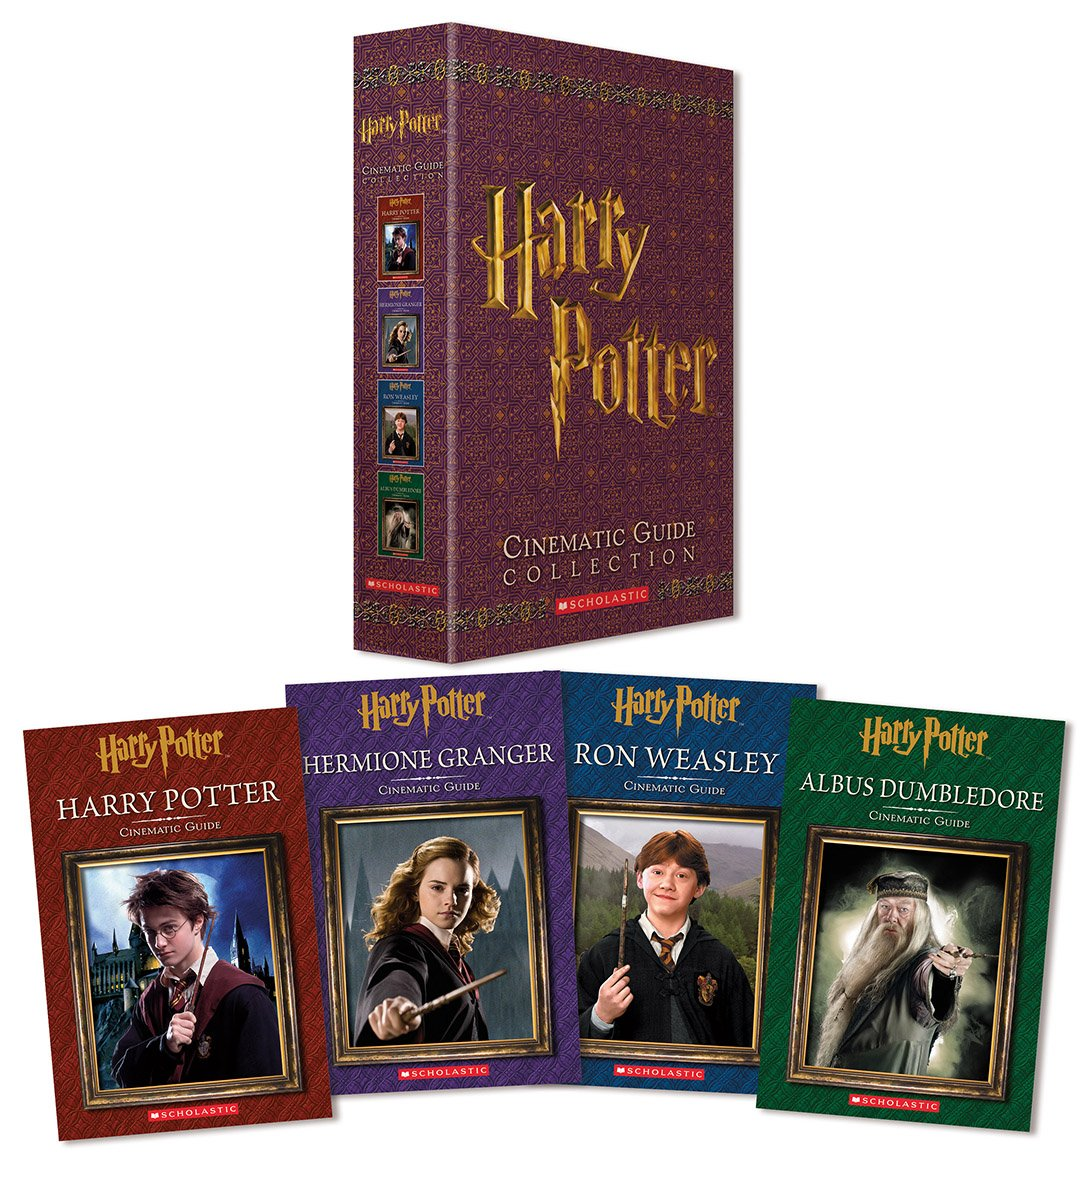 Harry Potter Book Guide : Harry potter cinematic guide collection reg